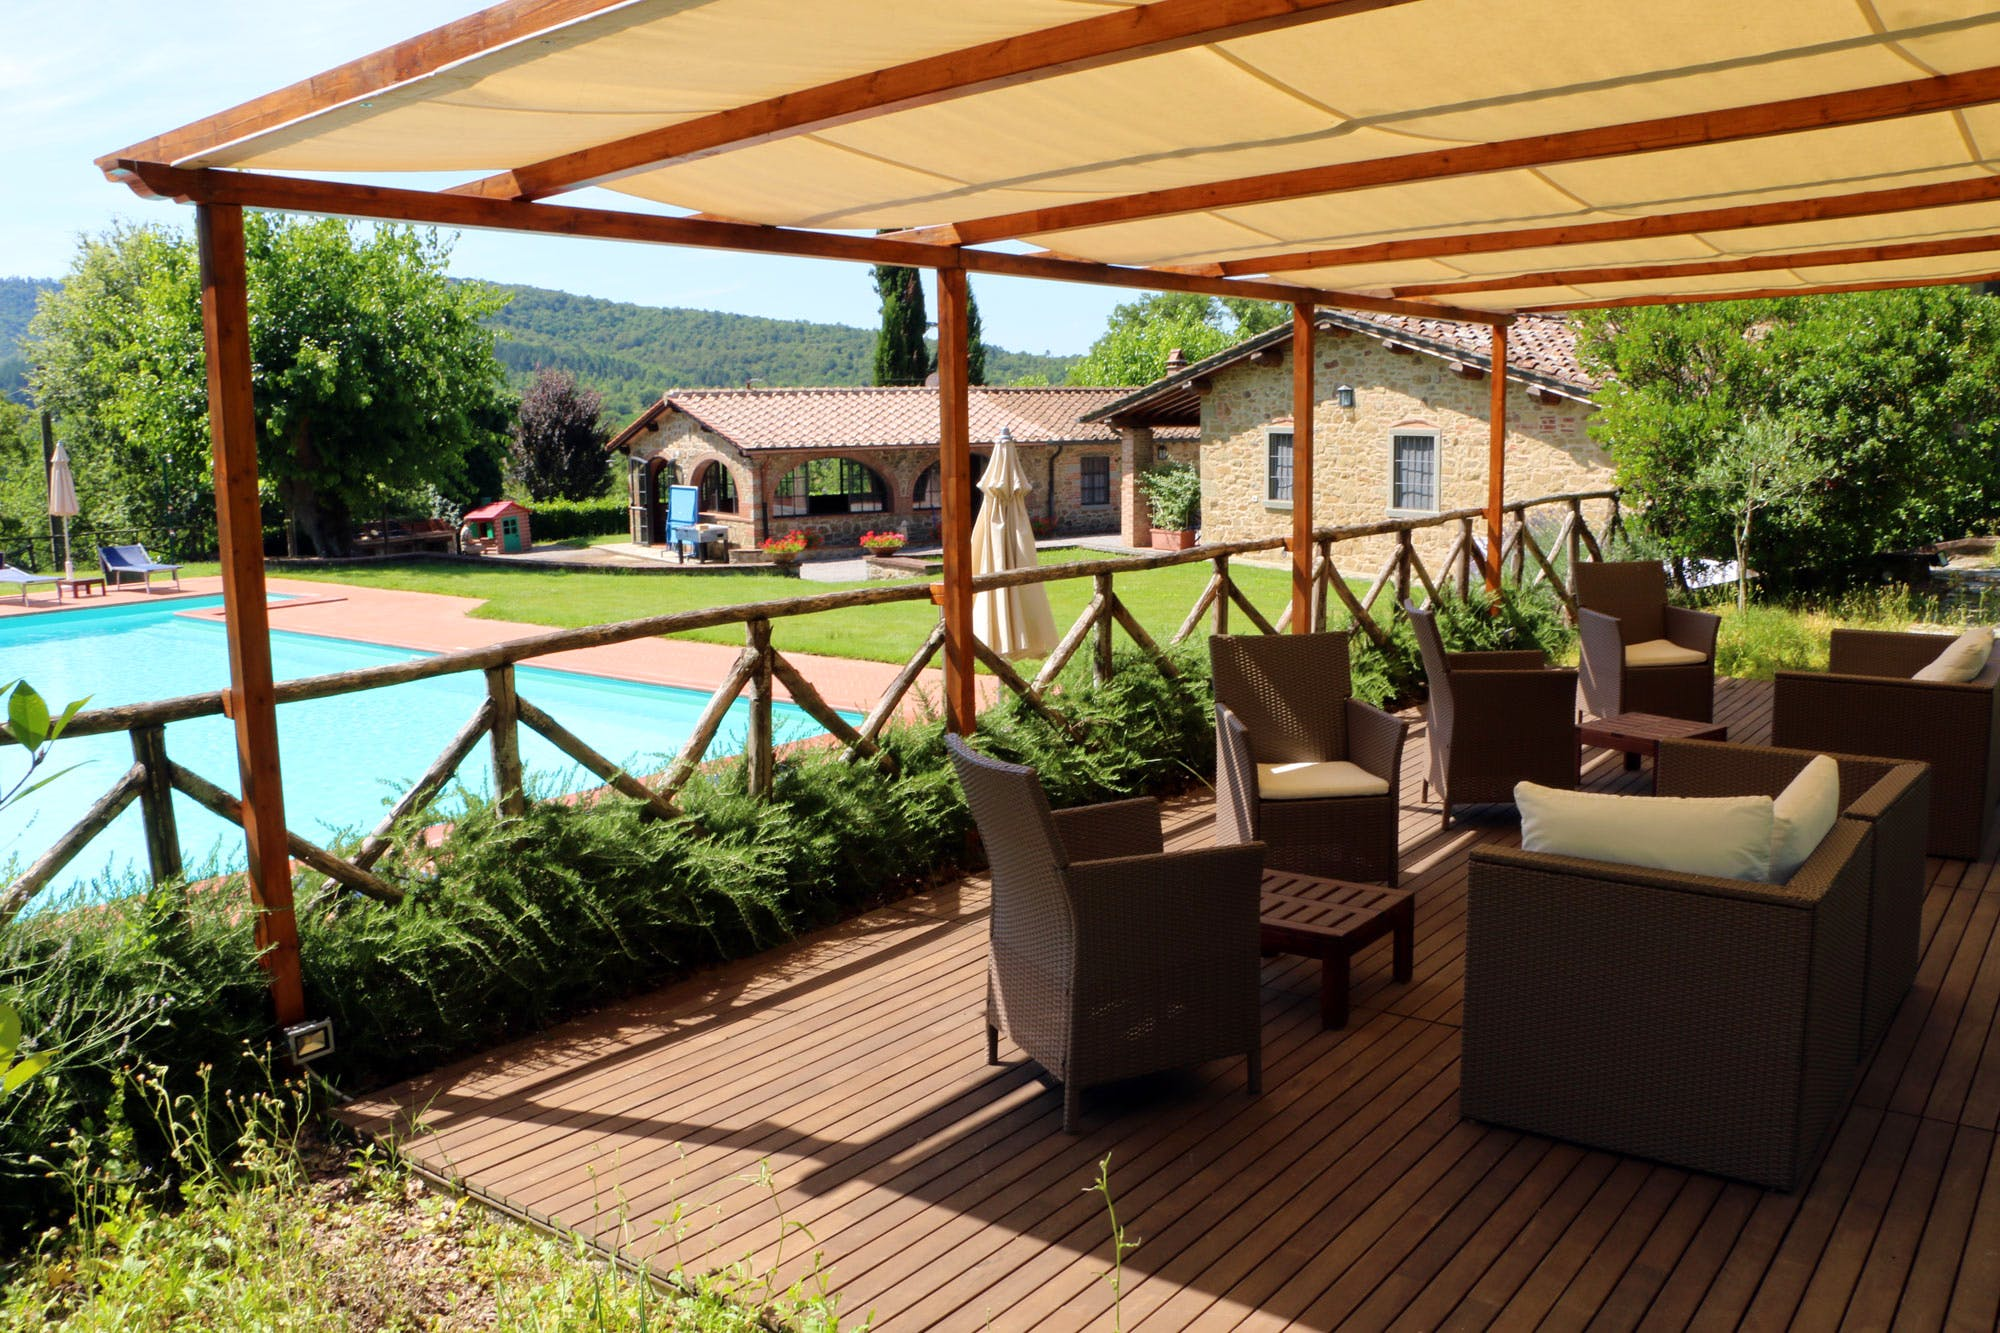 Tuscany Farmhouse AccommodationAgriturismo In ToscanaFarm